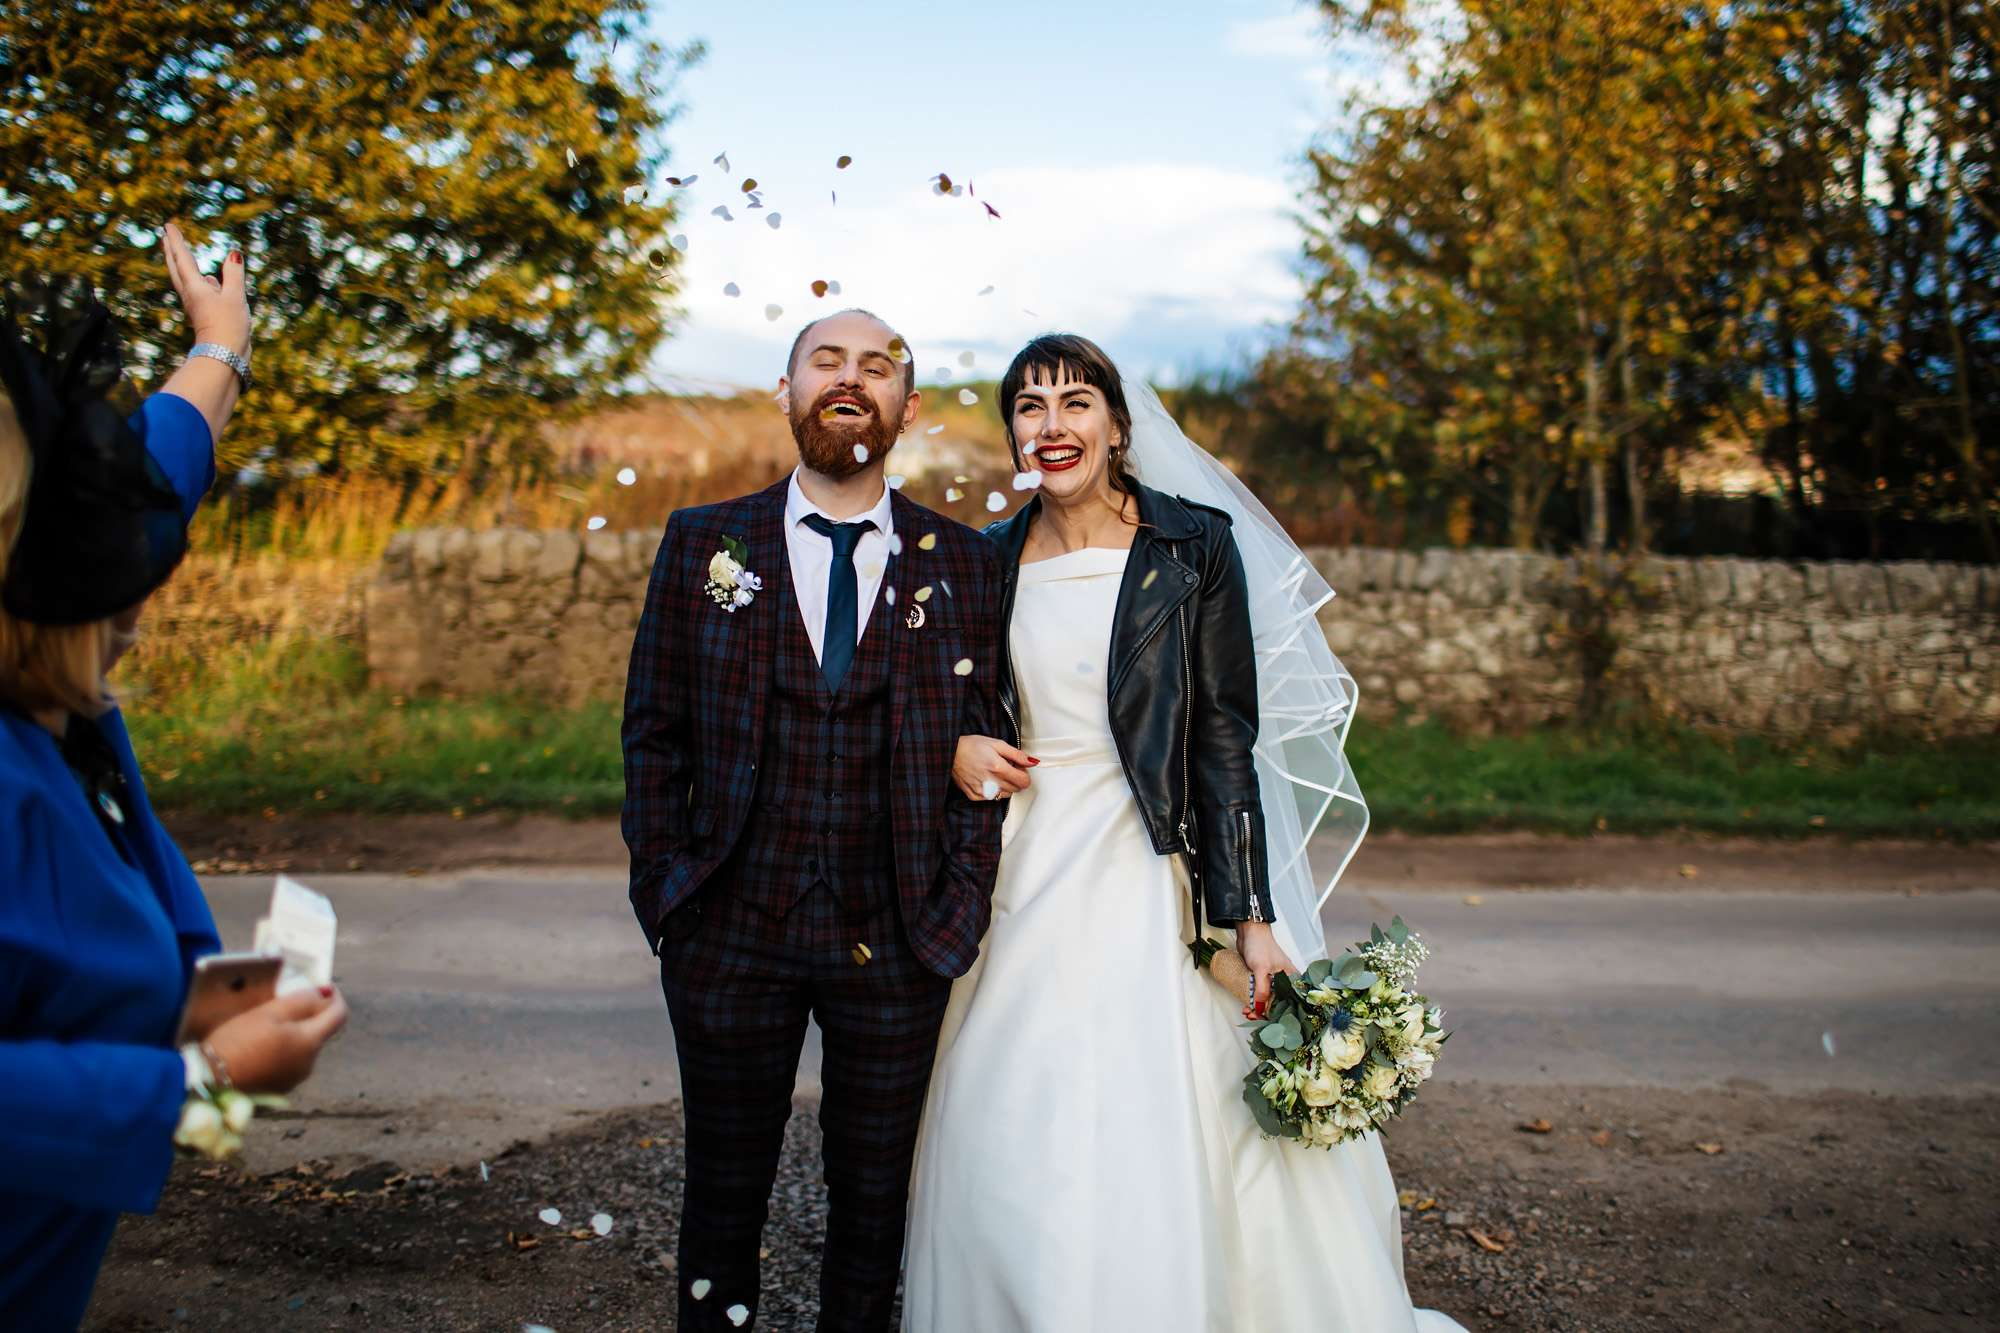 Confetti shot at a wedding in Fife